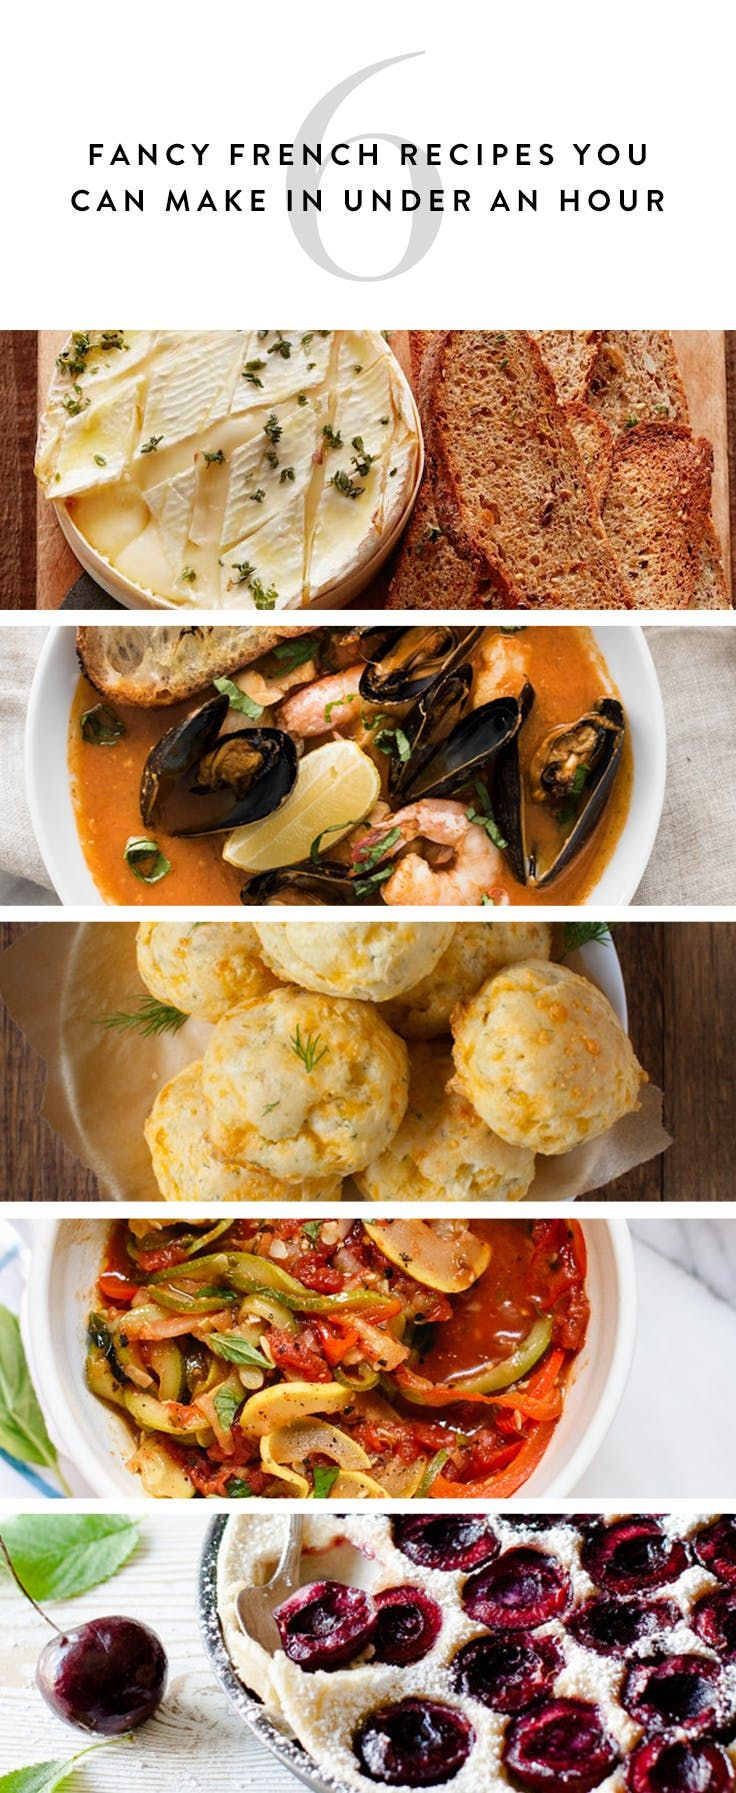 16 fancy french recipes you can make in under an hour recipes food ideas 16 fancy french recipes you can make in under an hour via purewow forumfinder Choice Image